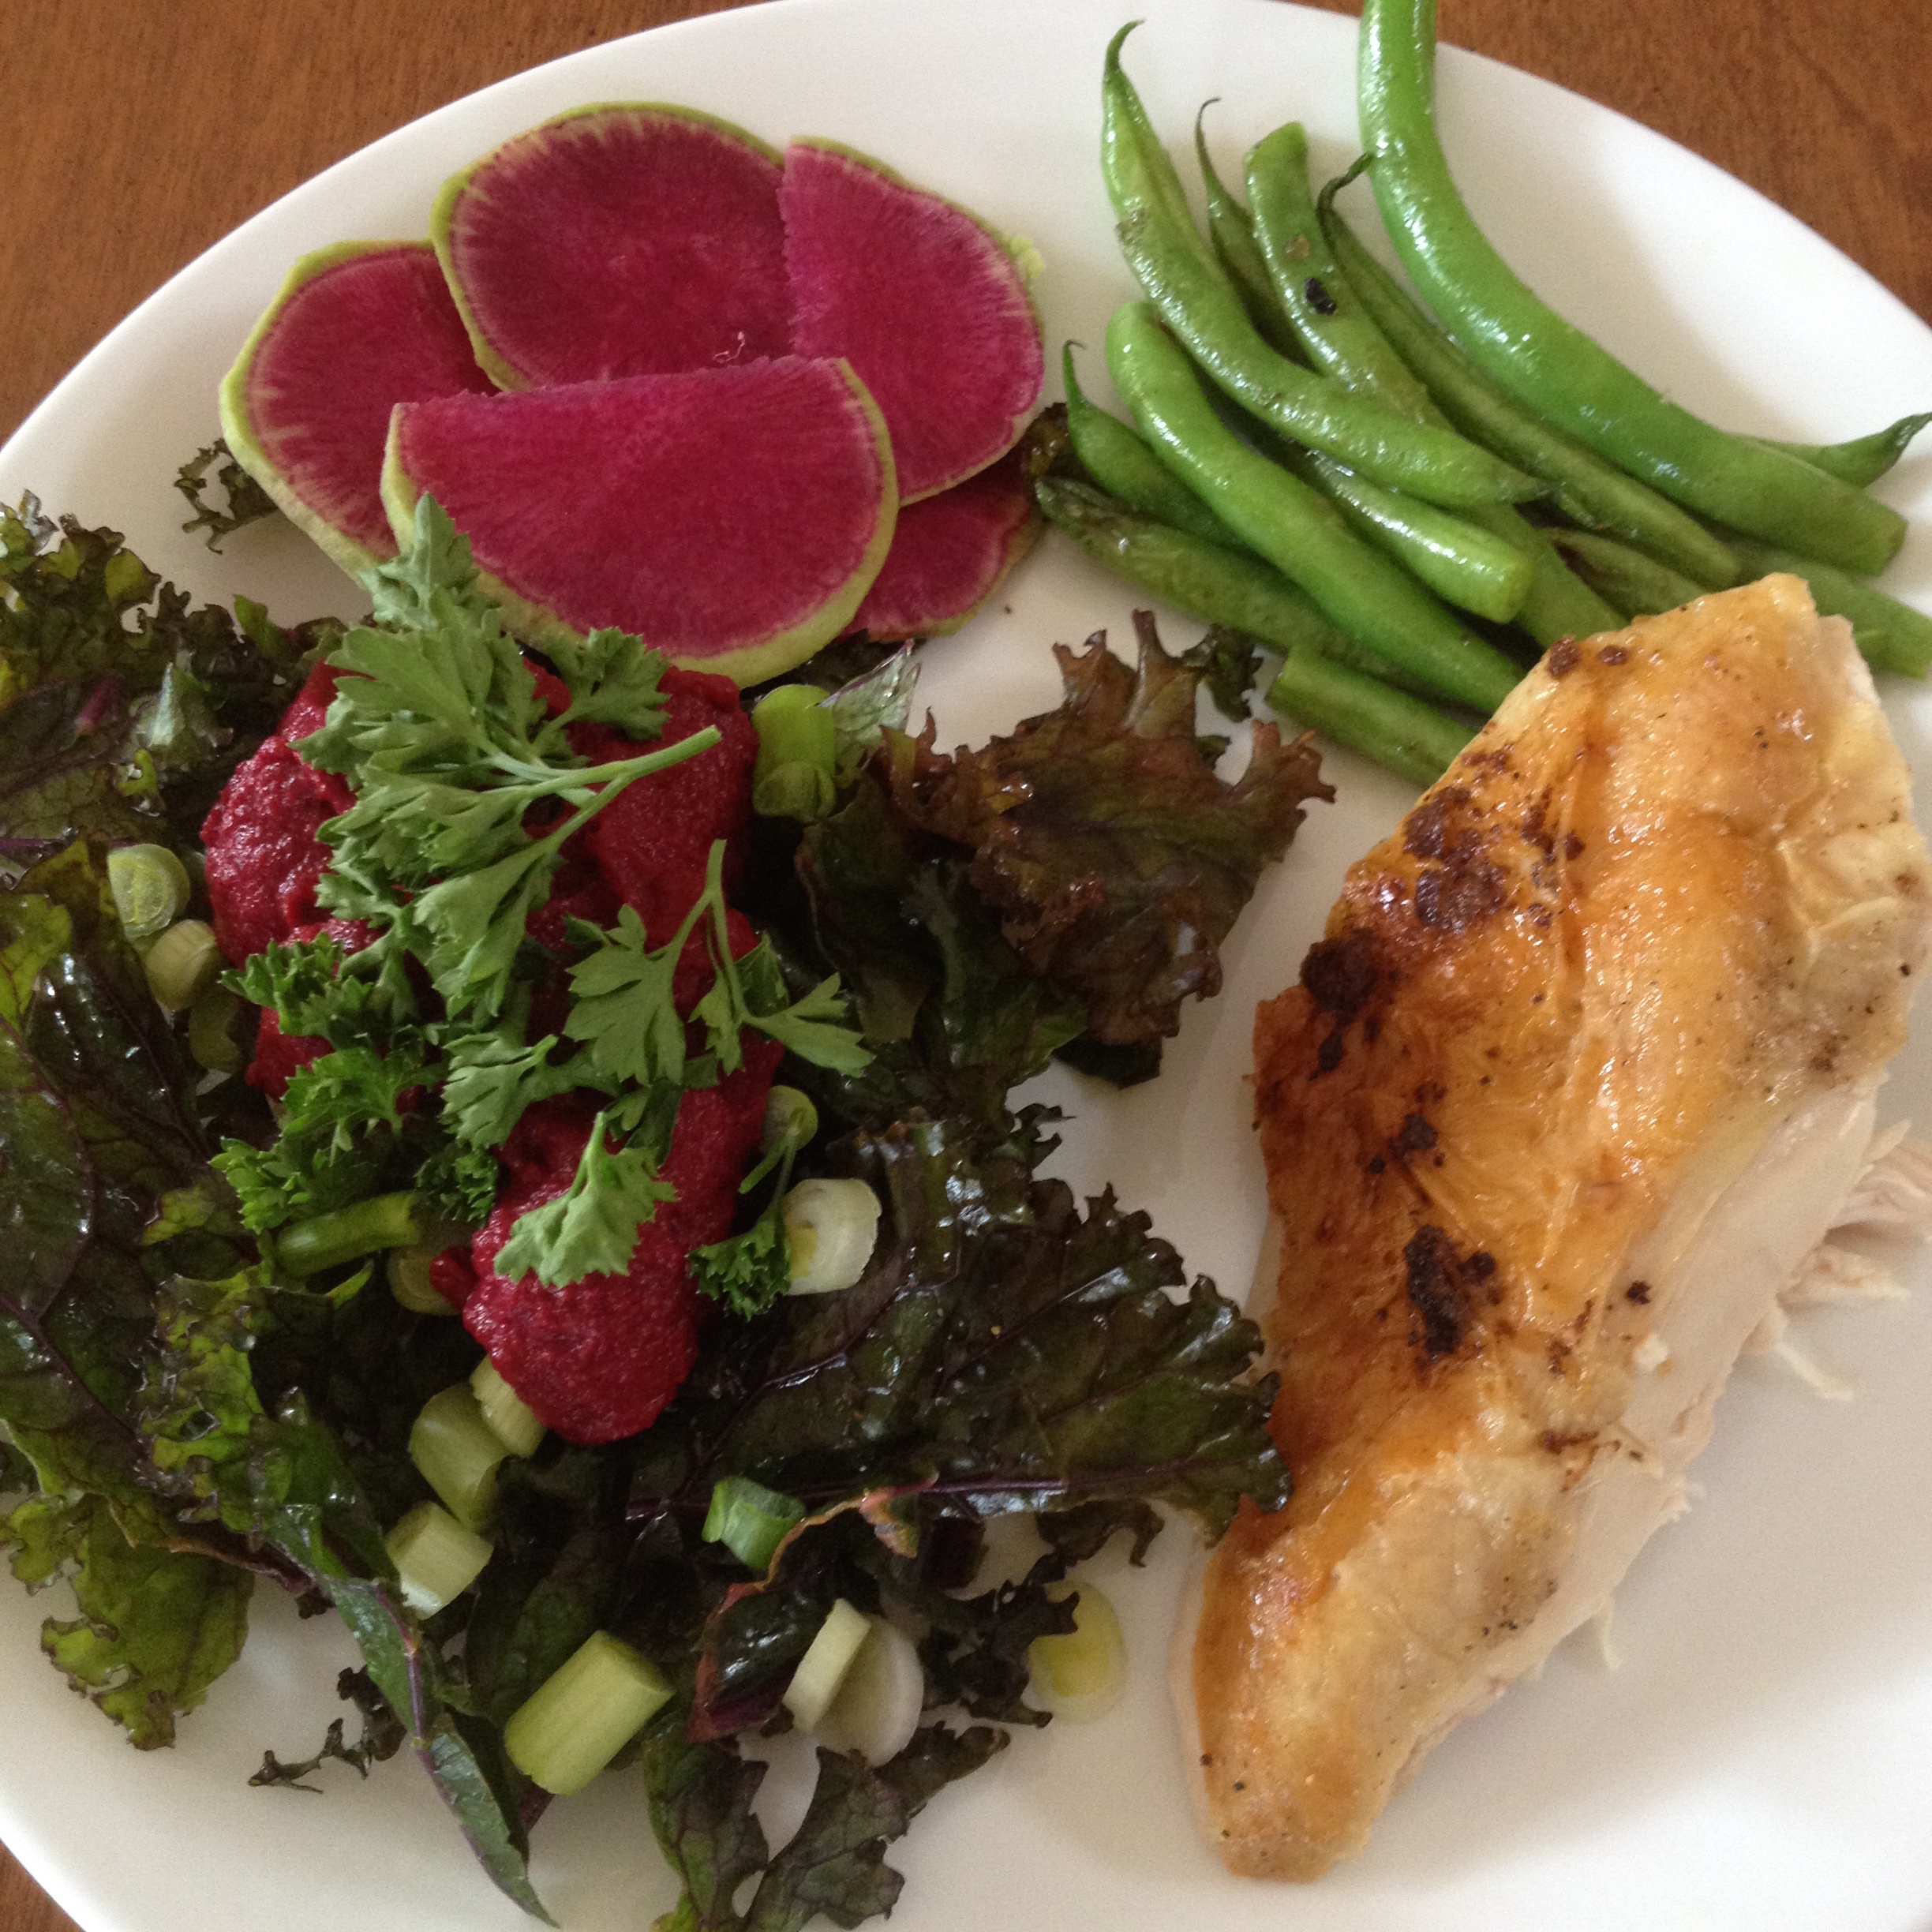 Watermelon Radish, Green Beans, Julia Childs whole chicken recipe with a kale salad and beet hummus.